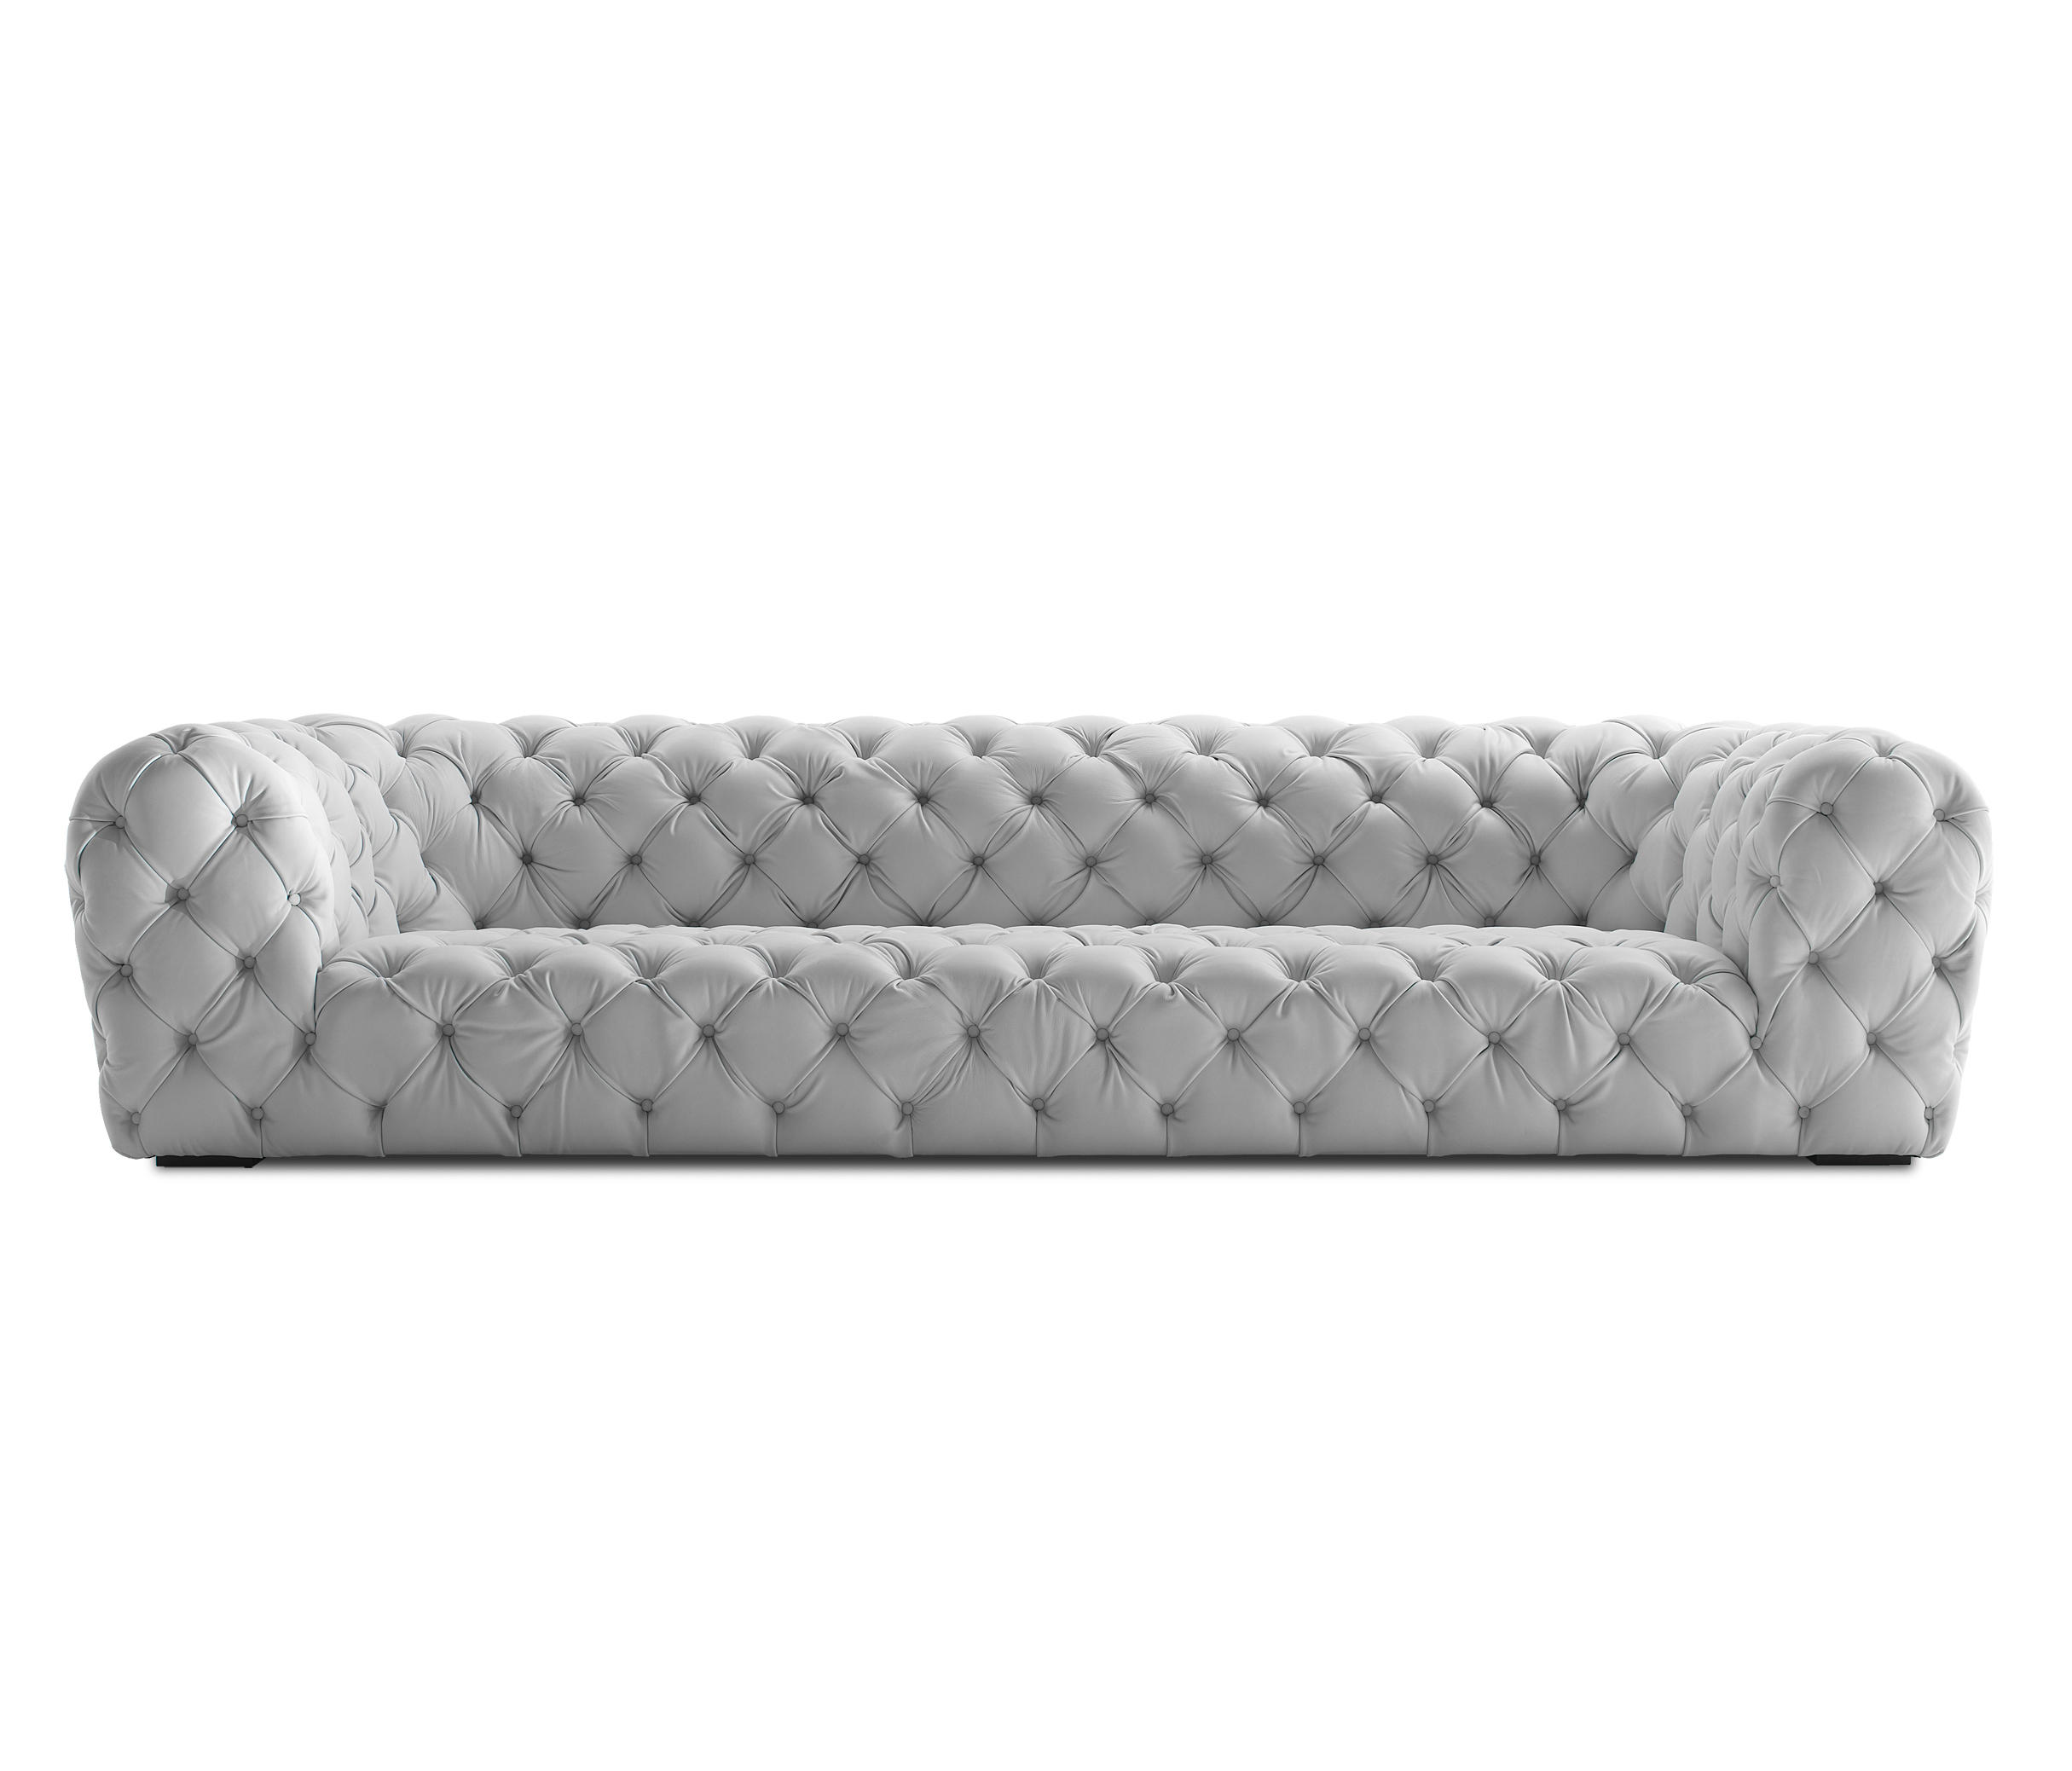 Divano Pelle Baxter.Chester Moon Sofa Sofas From Baxter Architonic